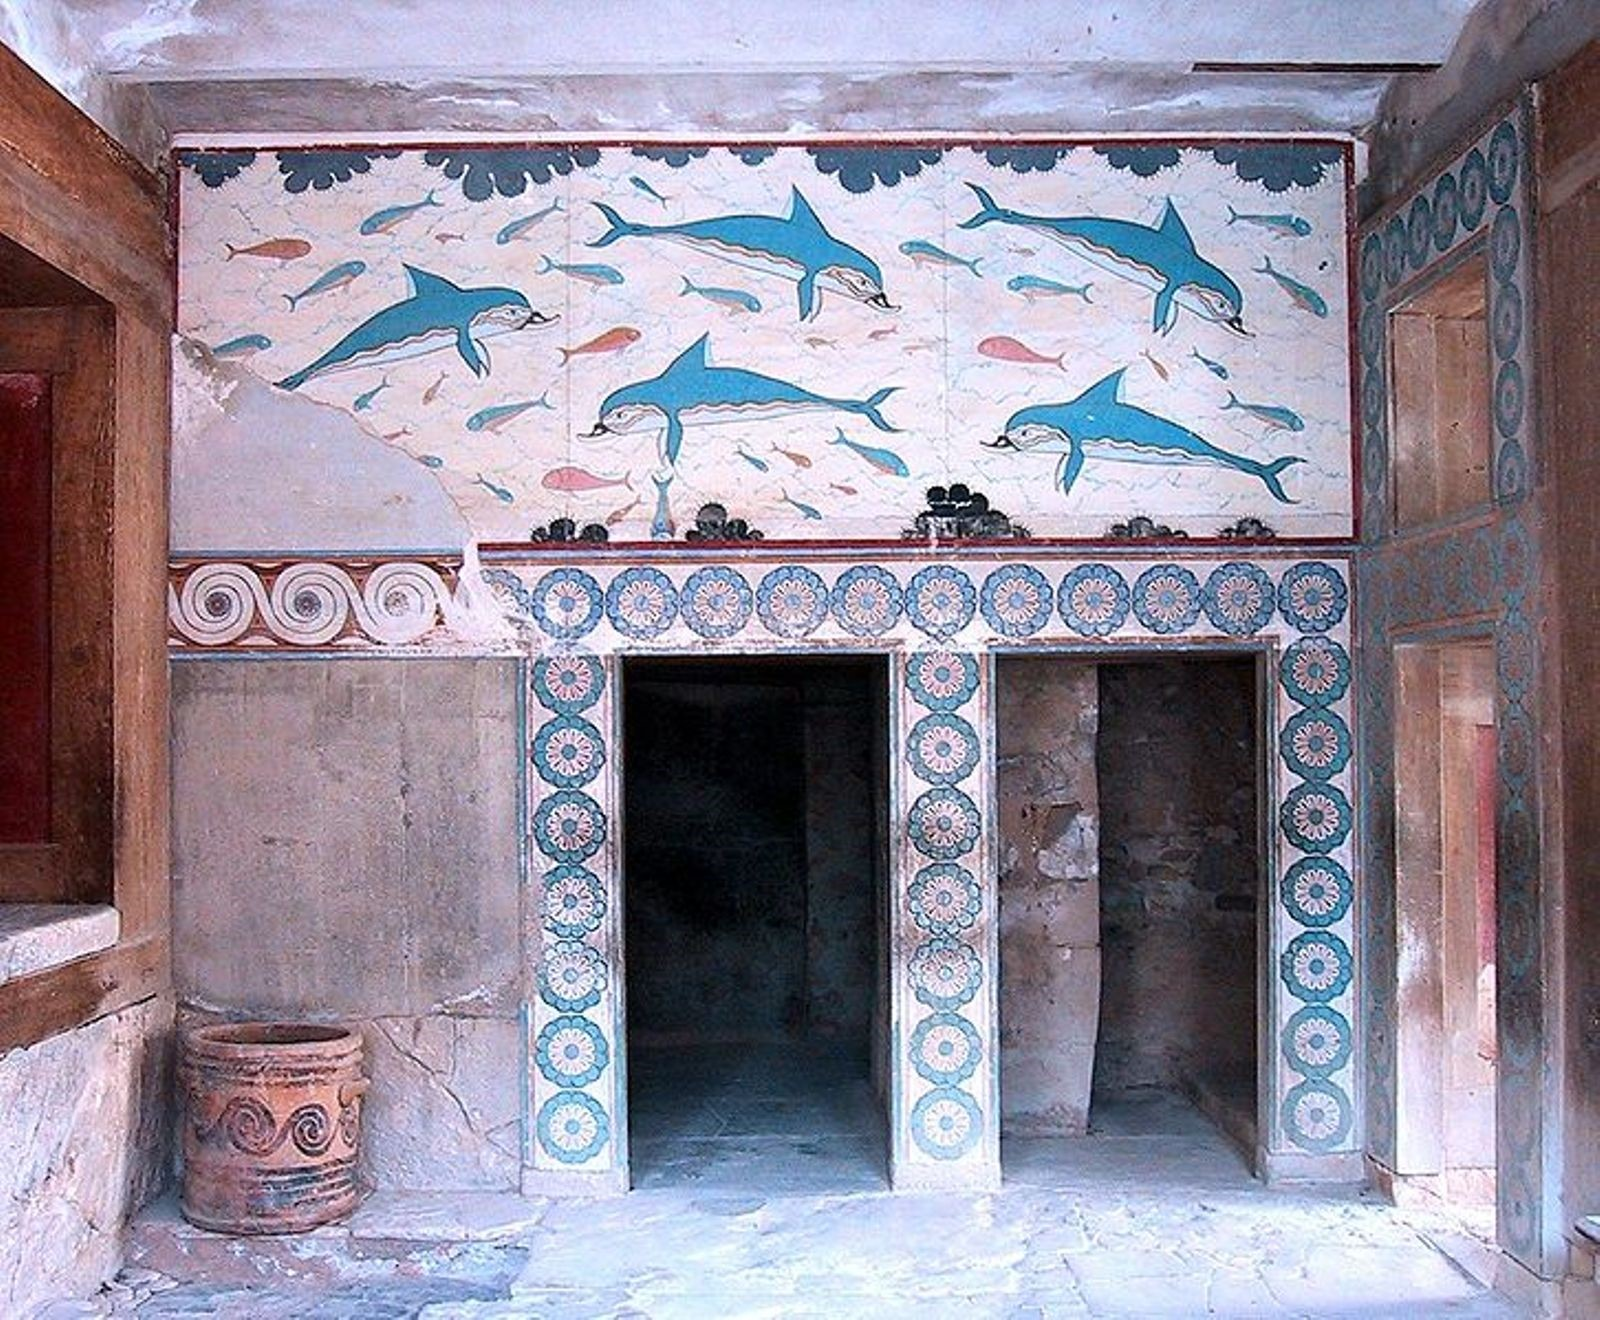 Queen's Room and the Dolphins' frescoe